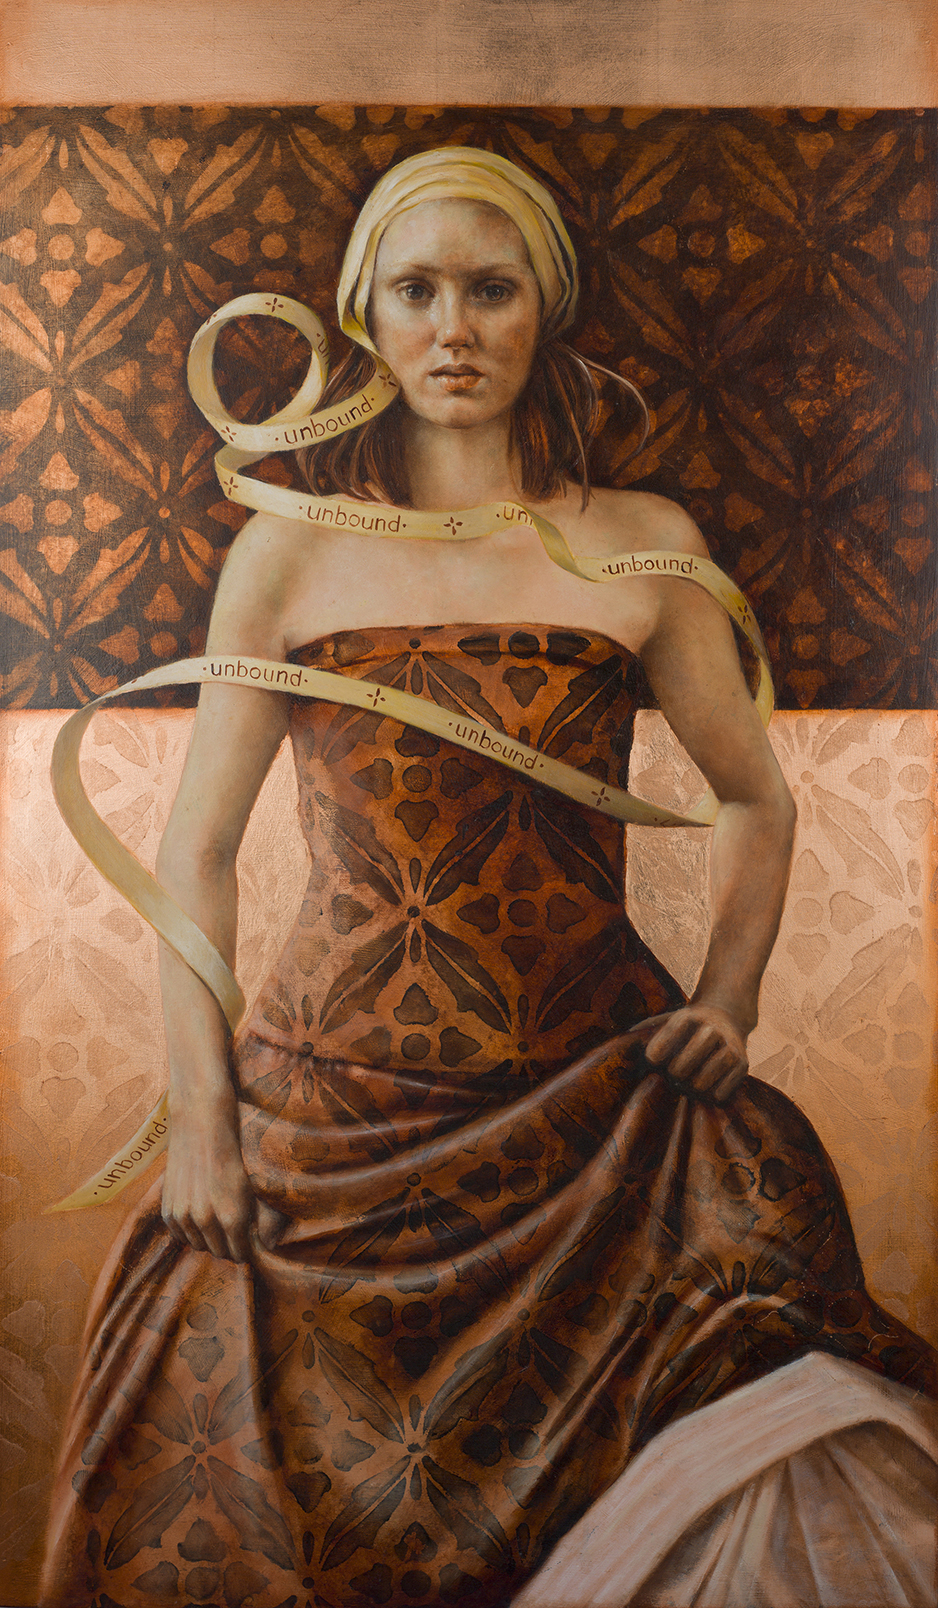 Pam Hawkes  |   Unbound   |  Oil on copper leaf on board  |  41 x 24 inches or 104 x 61 cm